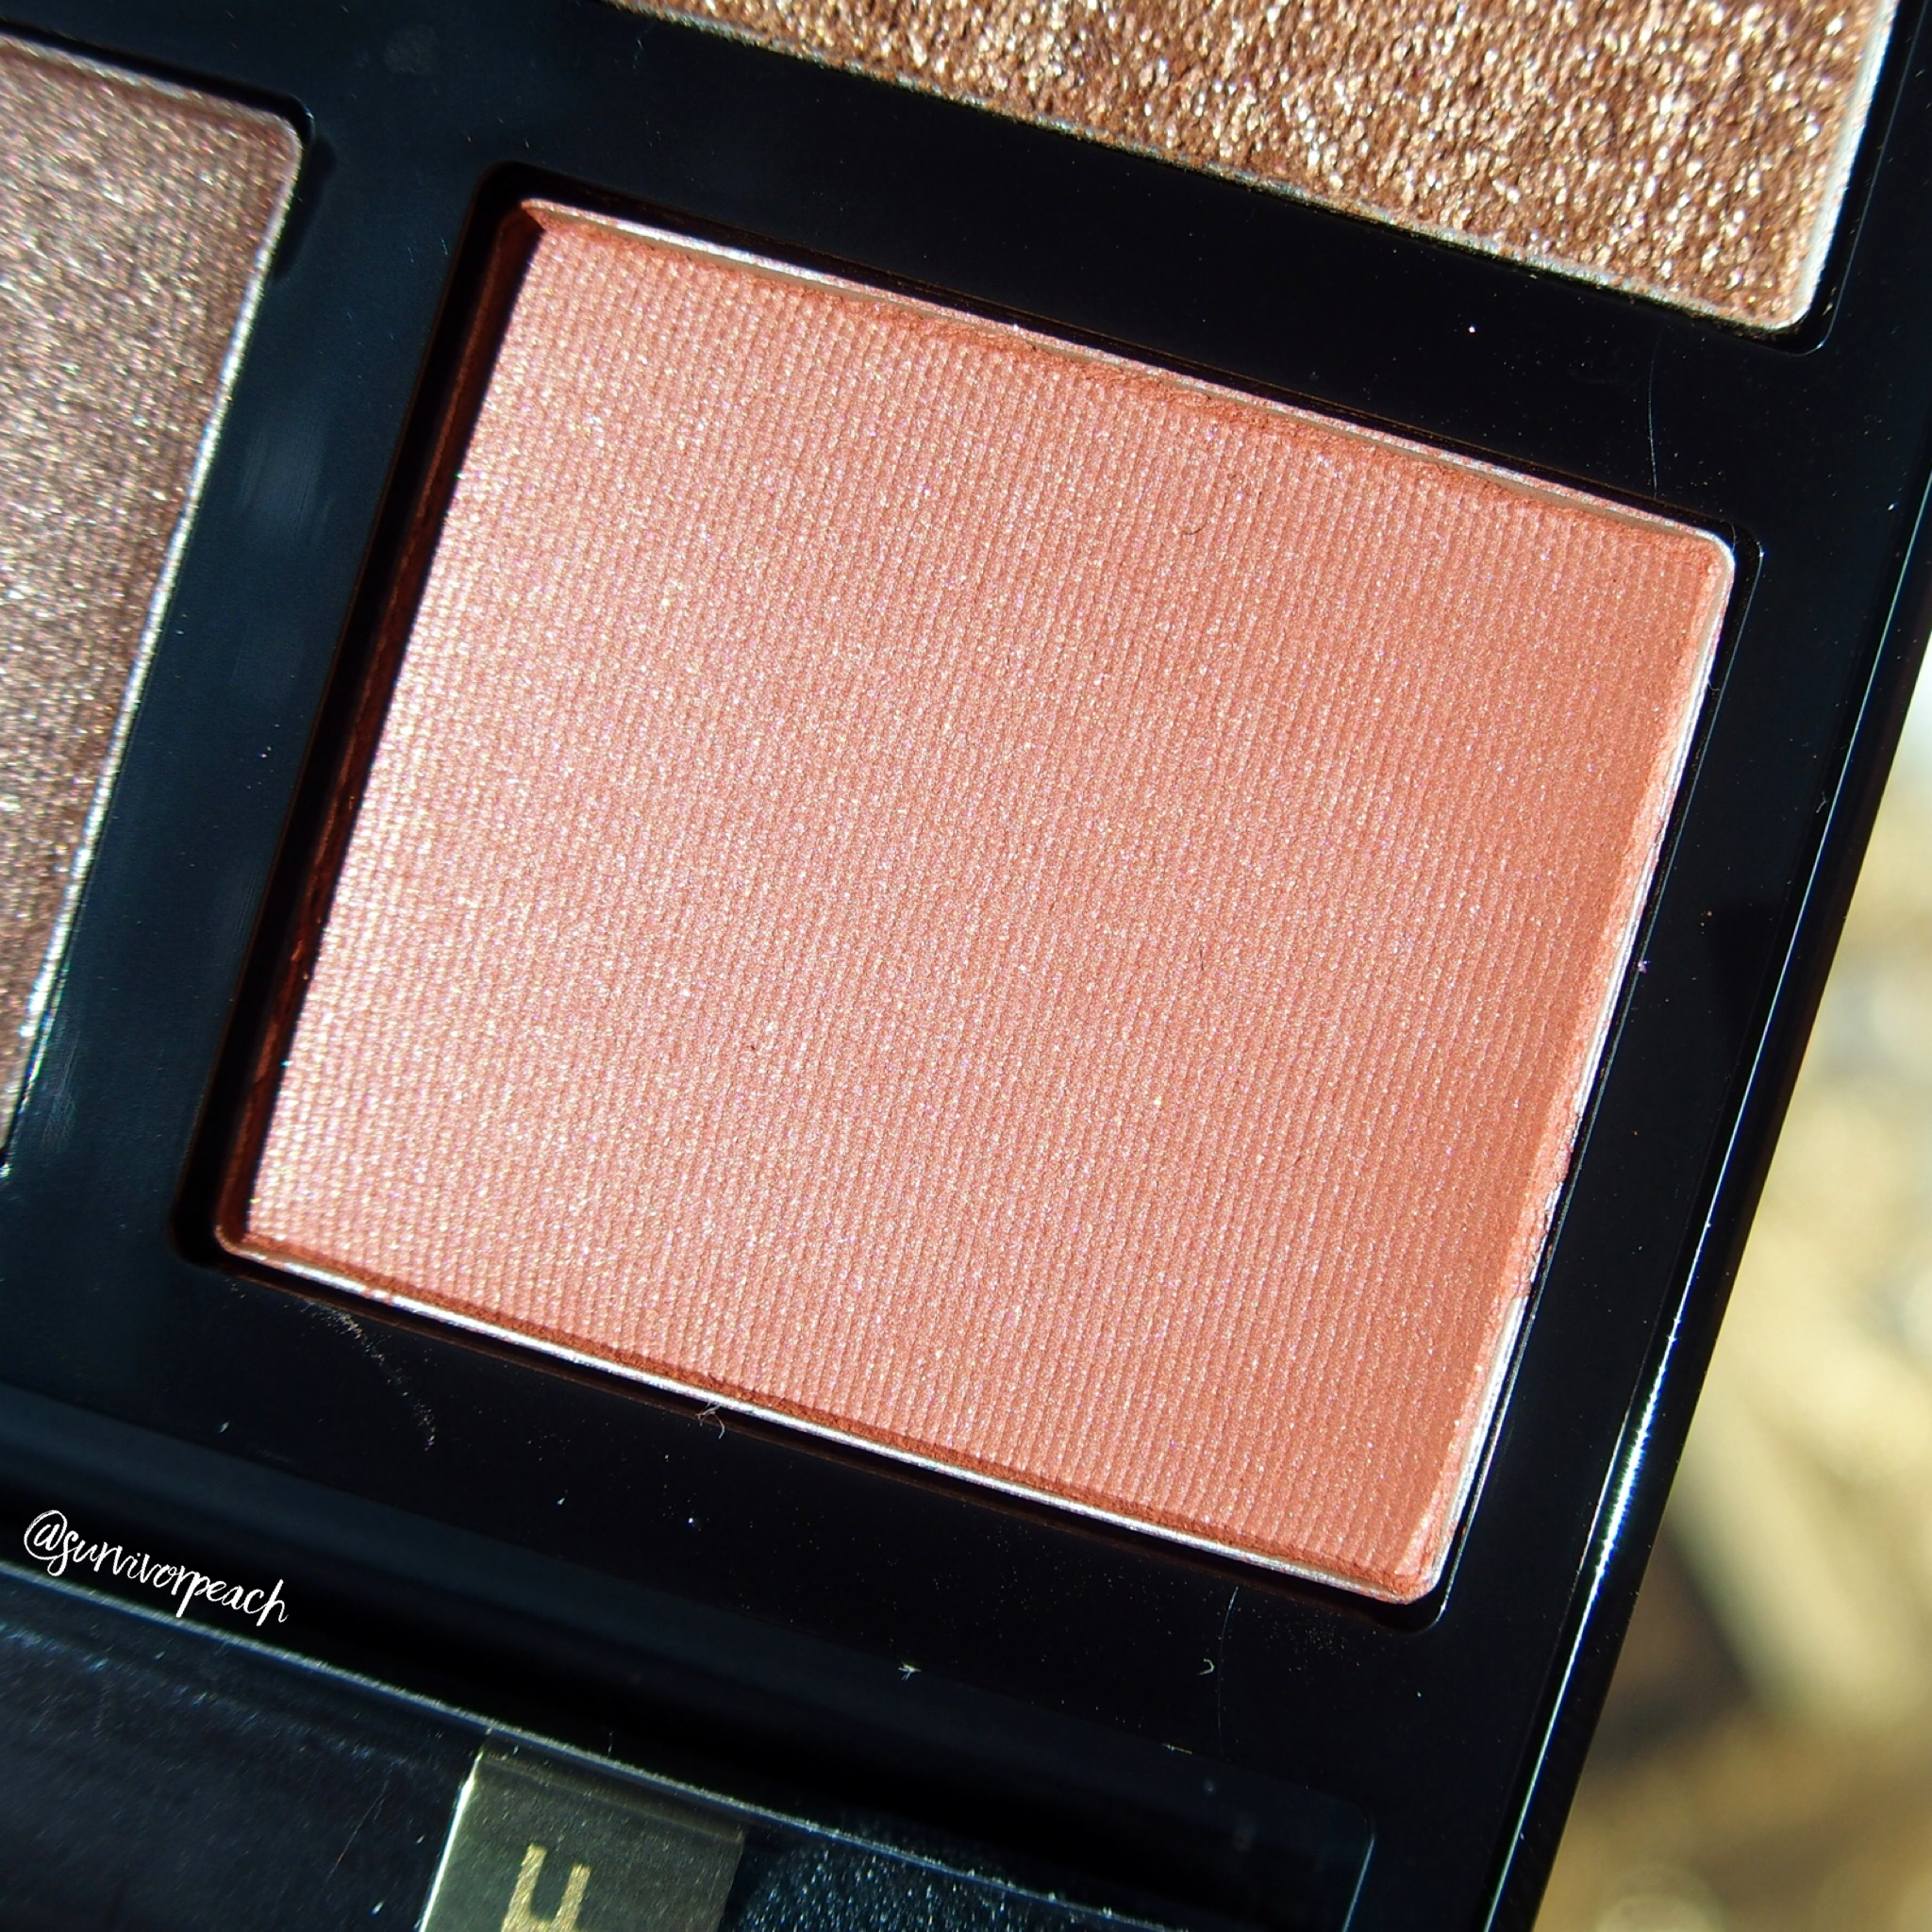 Tomford Beauty Leopard Sun Eyeshadow Quad